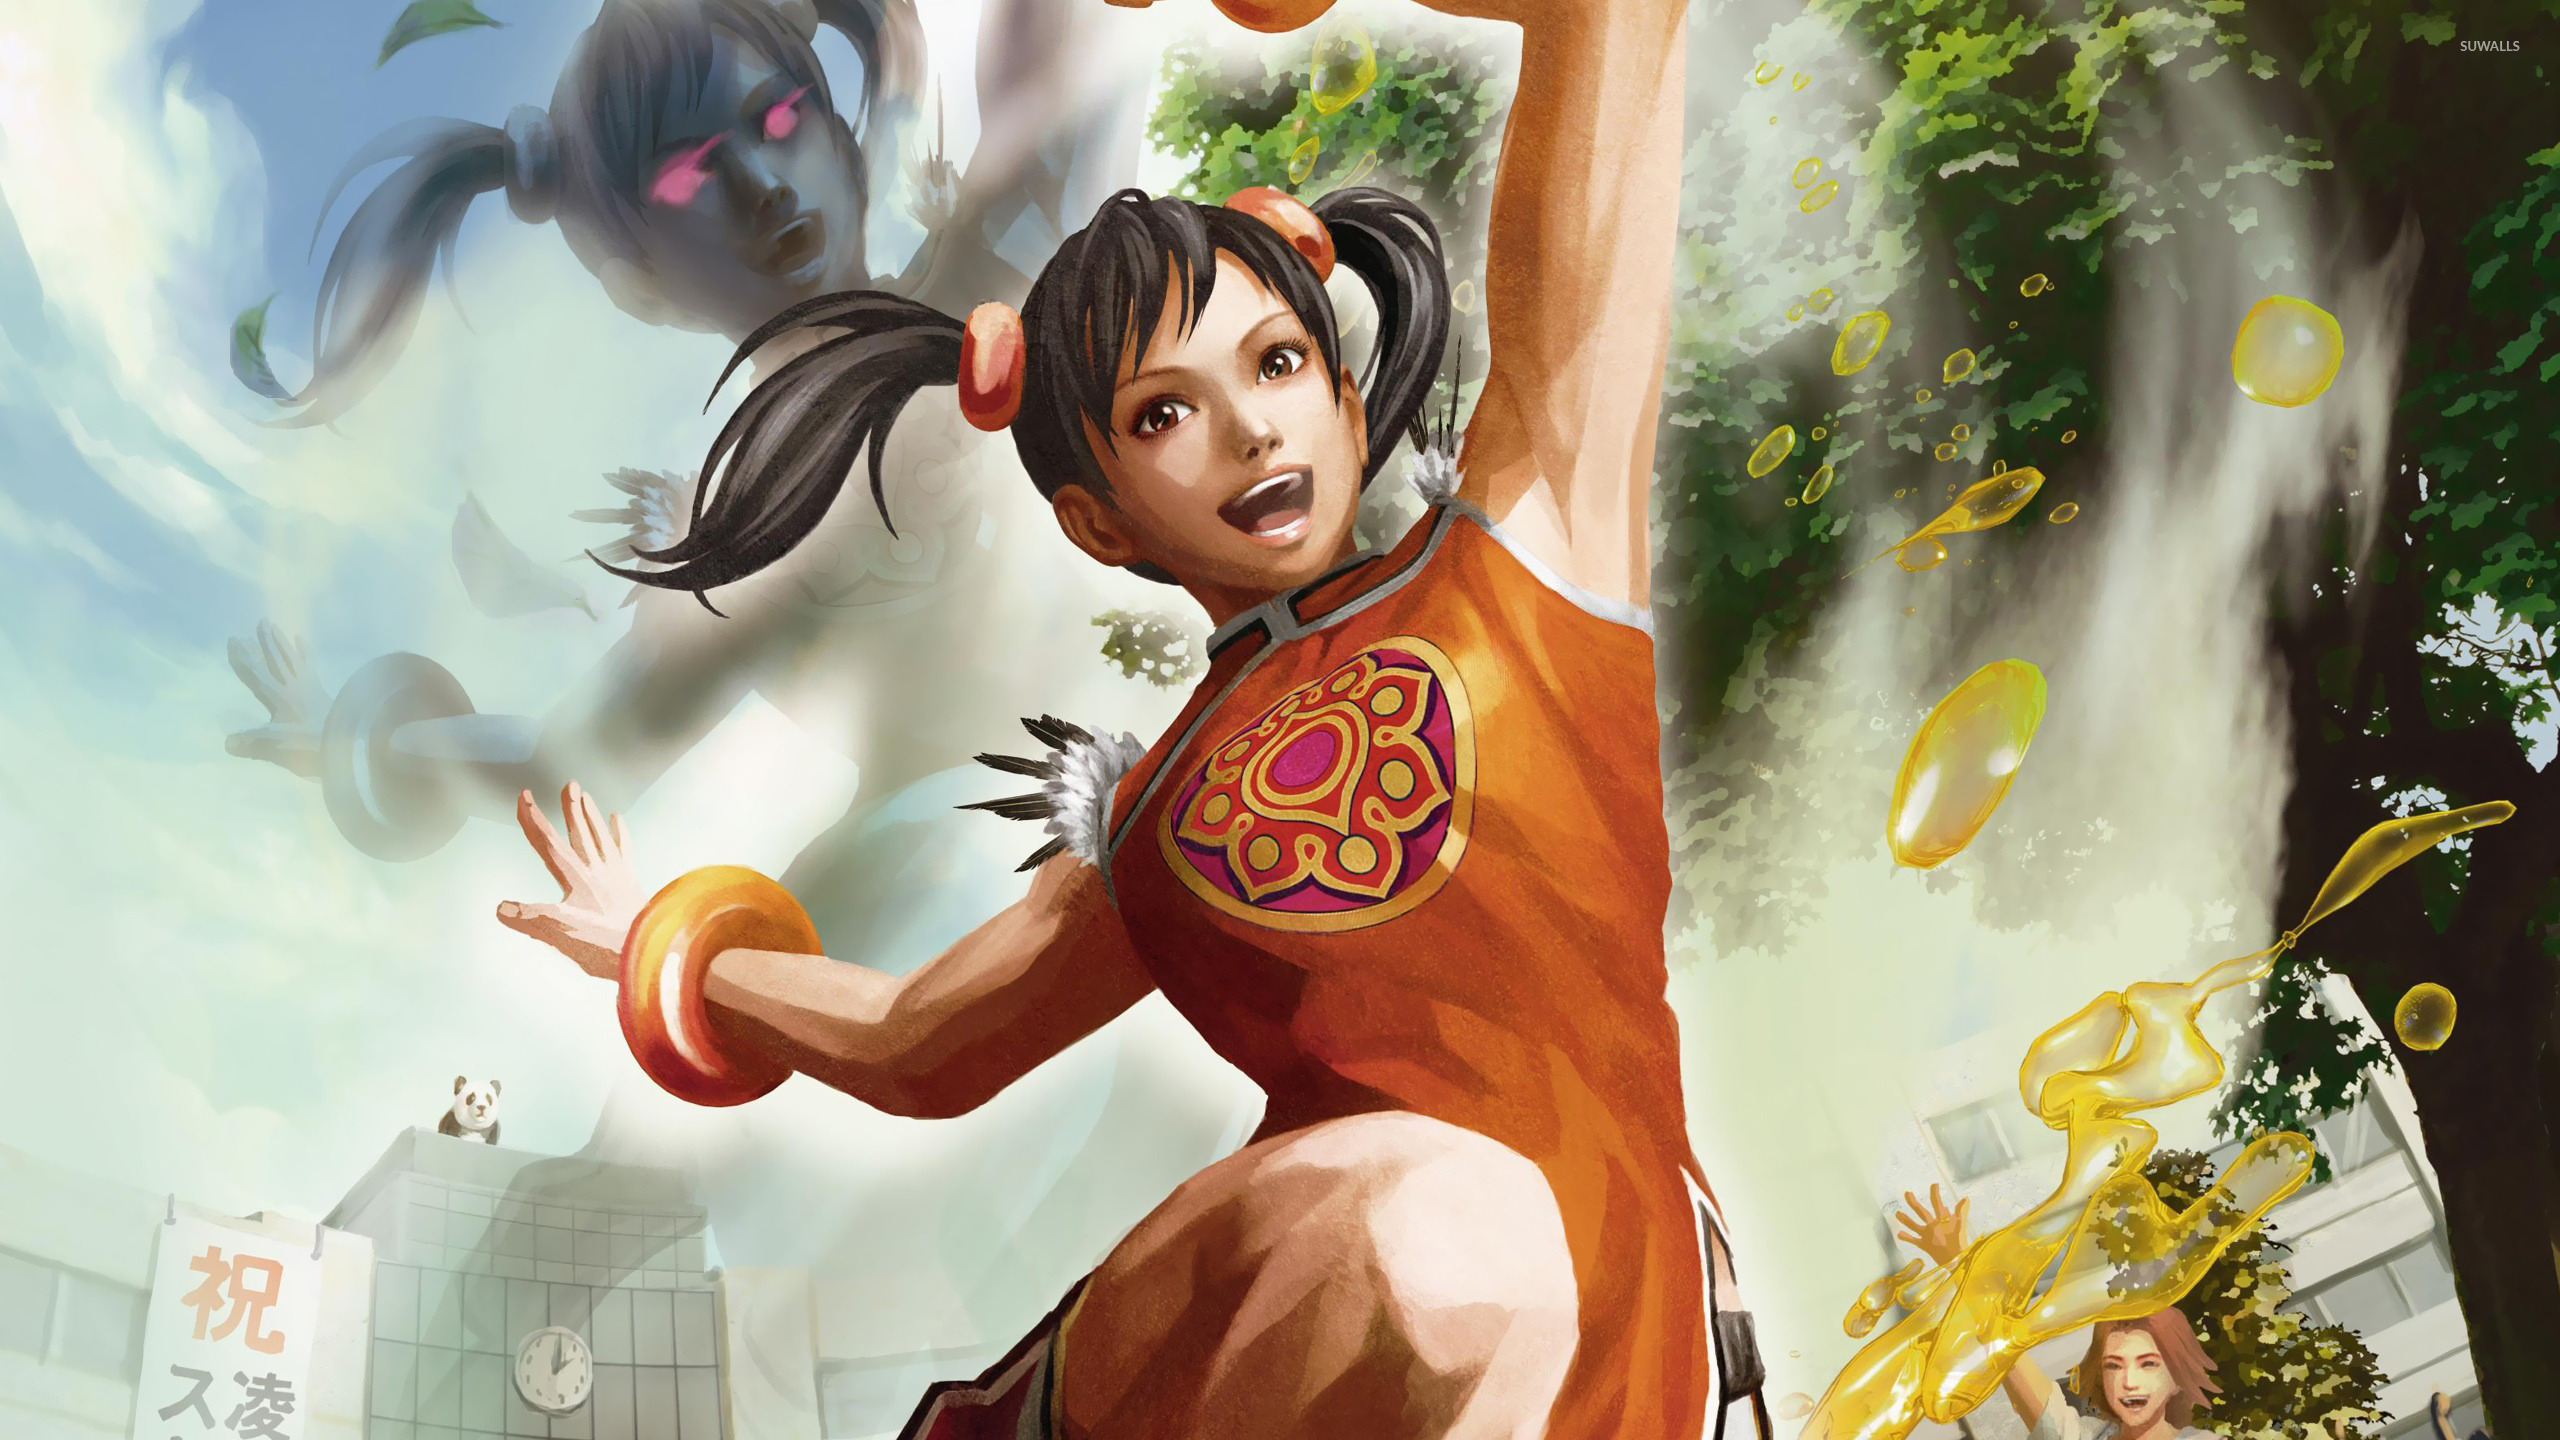 Xiaoyu Street Fighter X Tekken Wallpaper Game Wallpapers 18145